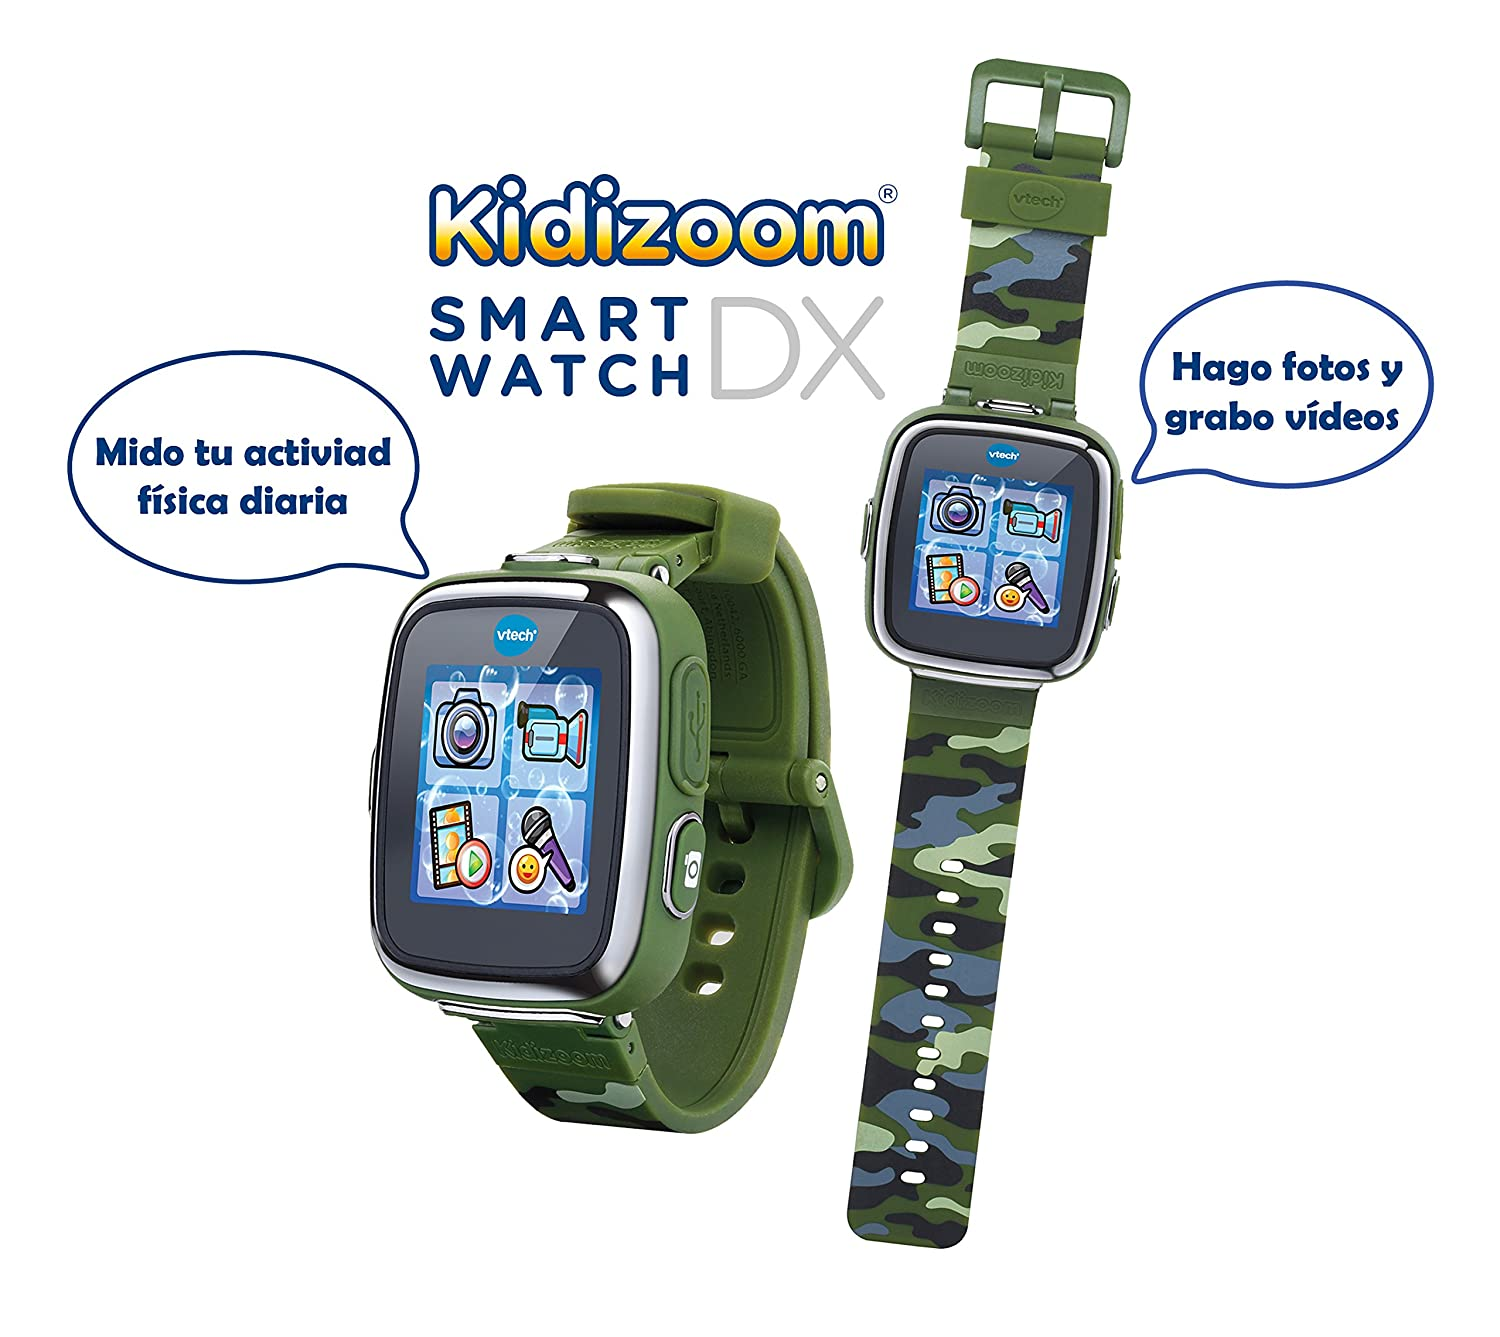 VTech Reloj multifunción Kidizoom Smart Watch DX, Color Camuflaje (80-171677)